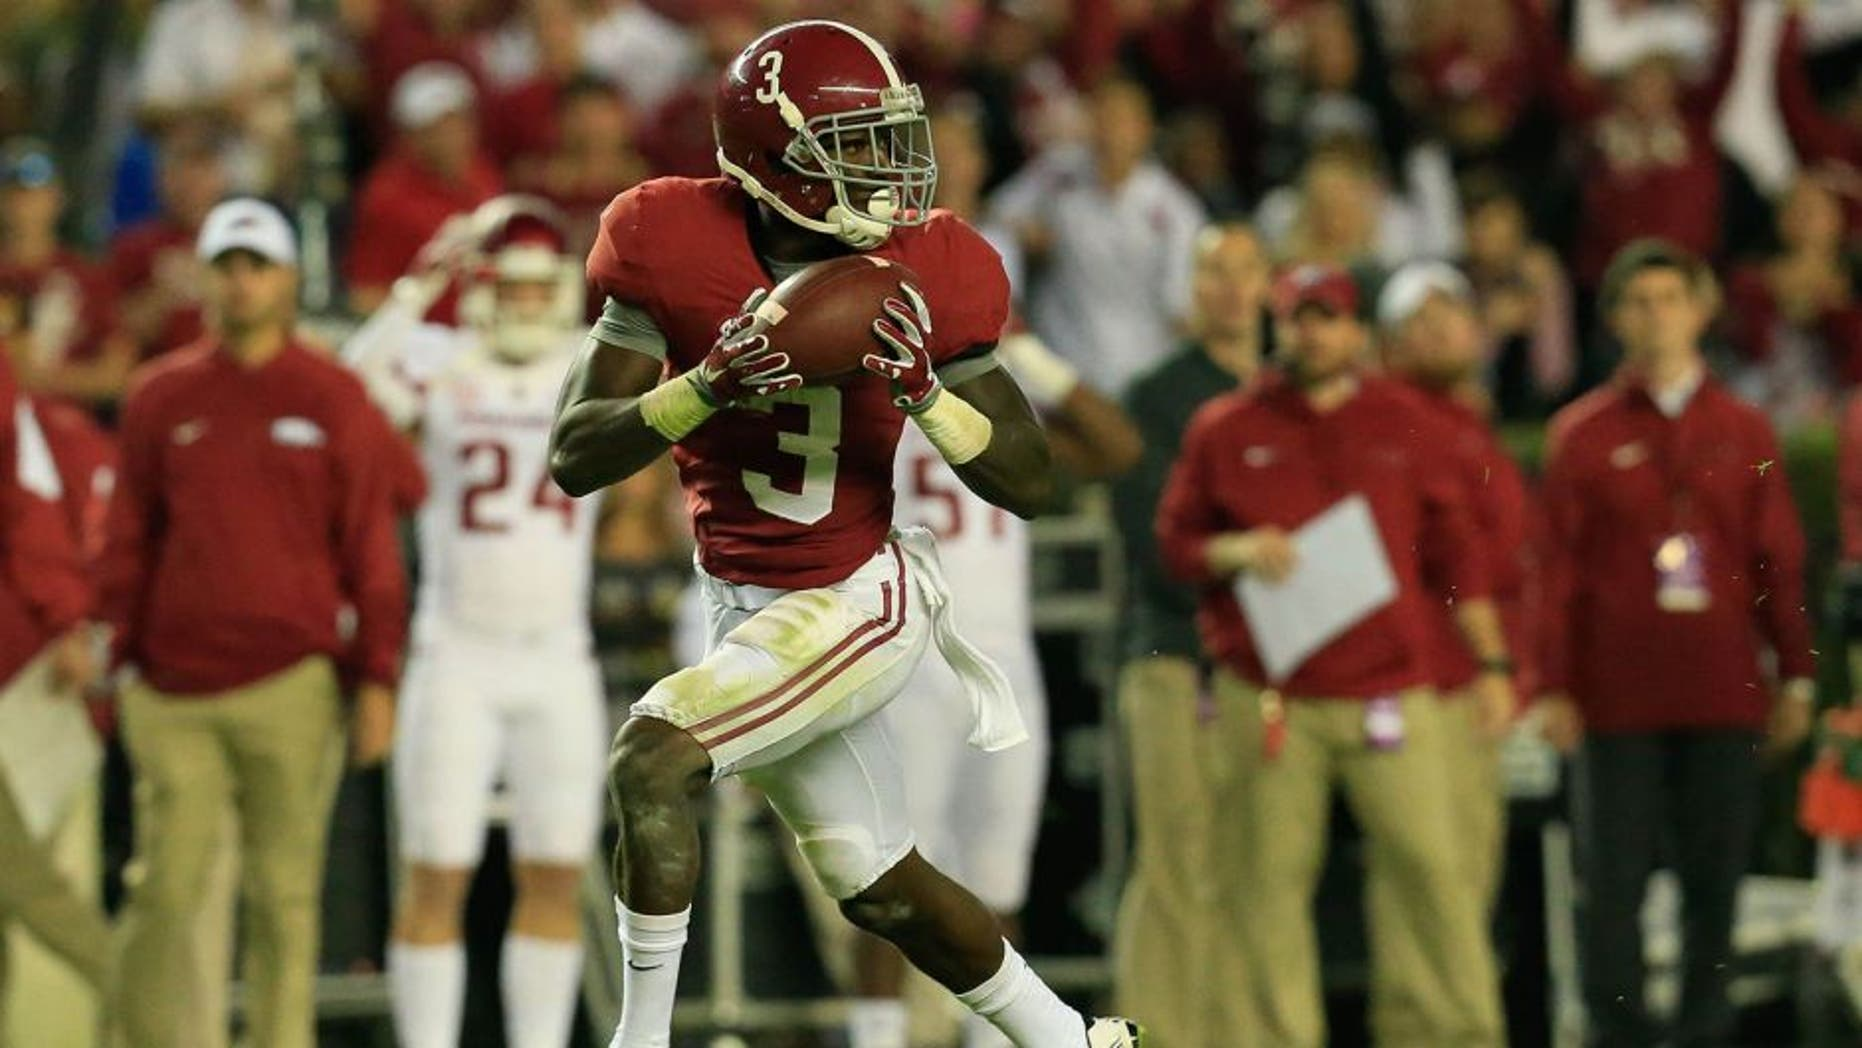 Oct 10, 2015; Tuscaloosa, AL, USA; Alabama Crimson Tide wide receiver Calvin Ridley (3) catches a touchdown pass against the Arkansas Razorbacks at Bryant-Denny Stadium. Mandatory Credit: Marvin Gentry-USA TODAY Sports